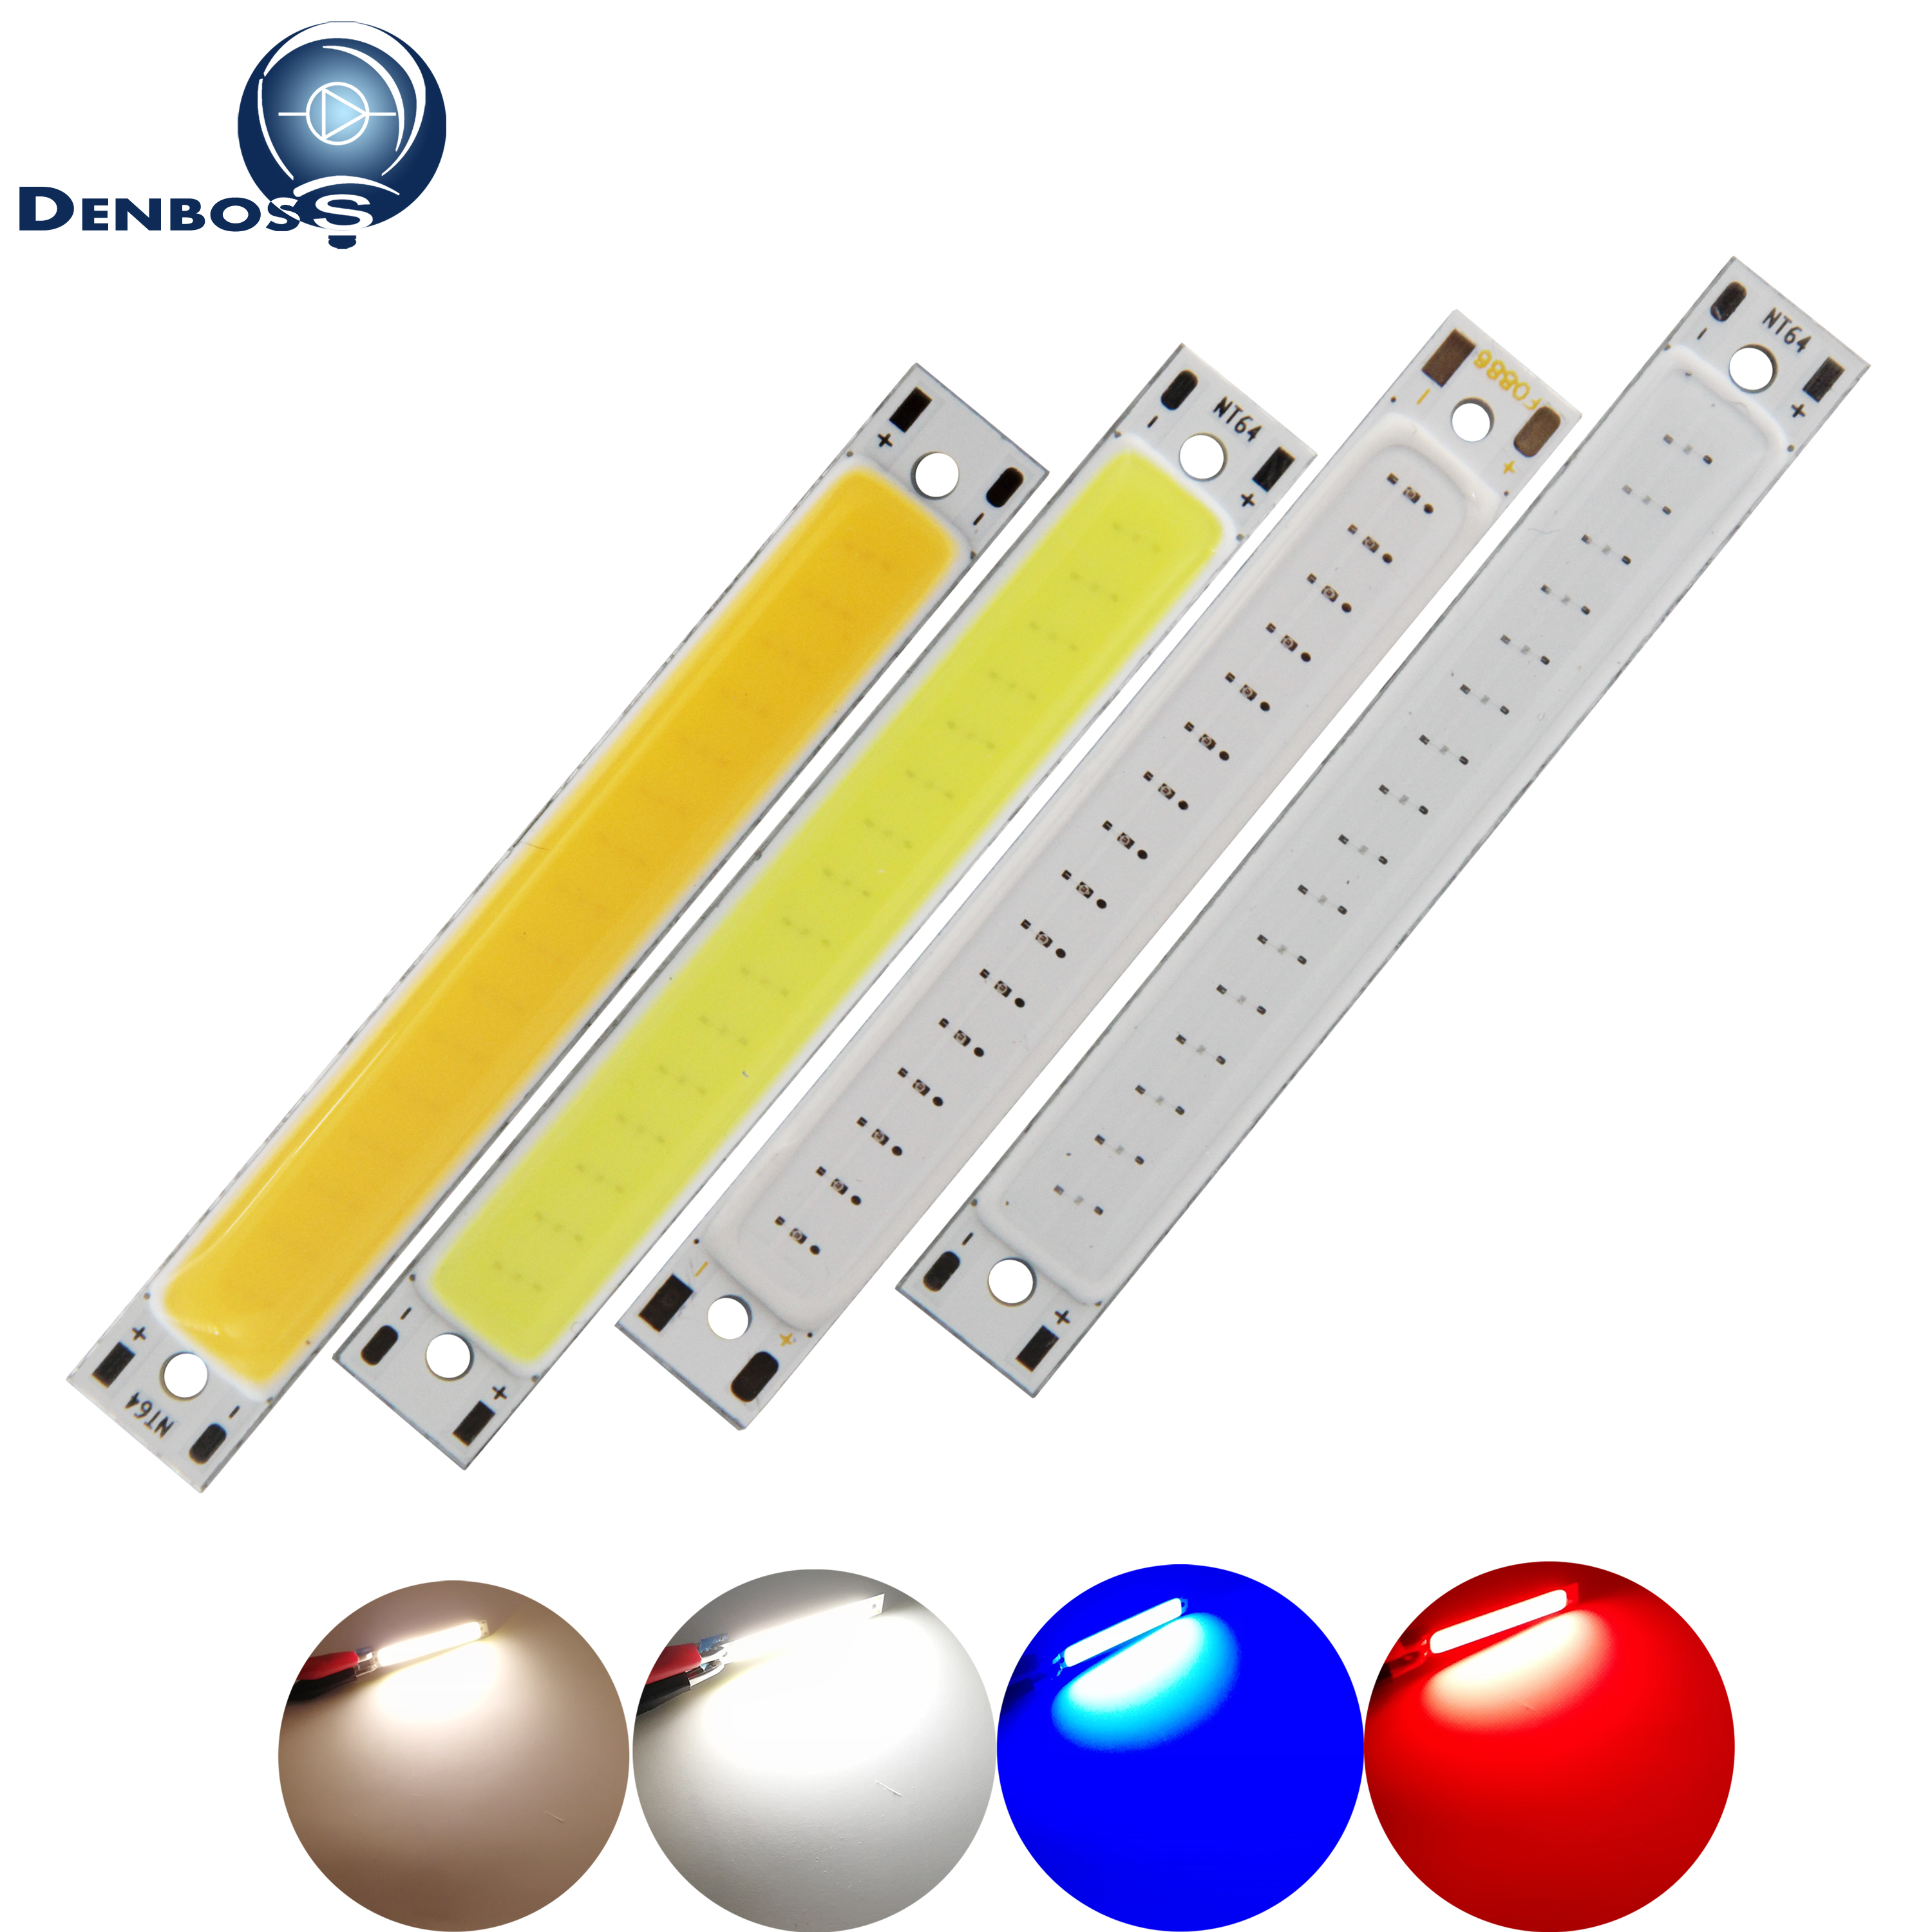 10PCS/Lot manufacturer 60x8mm 1.5W 2V 3V DC <font><b>LED</b></font> COB <font><b>Strip</b></font> for work Bike lamp Warm White Blue Red COB <font><b>LED</b></font> Light for DIY Bulb image